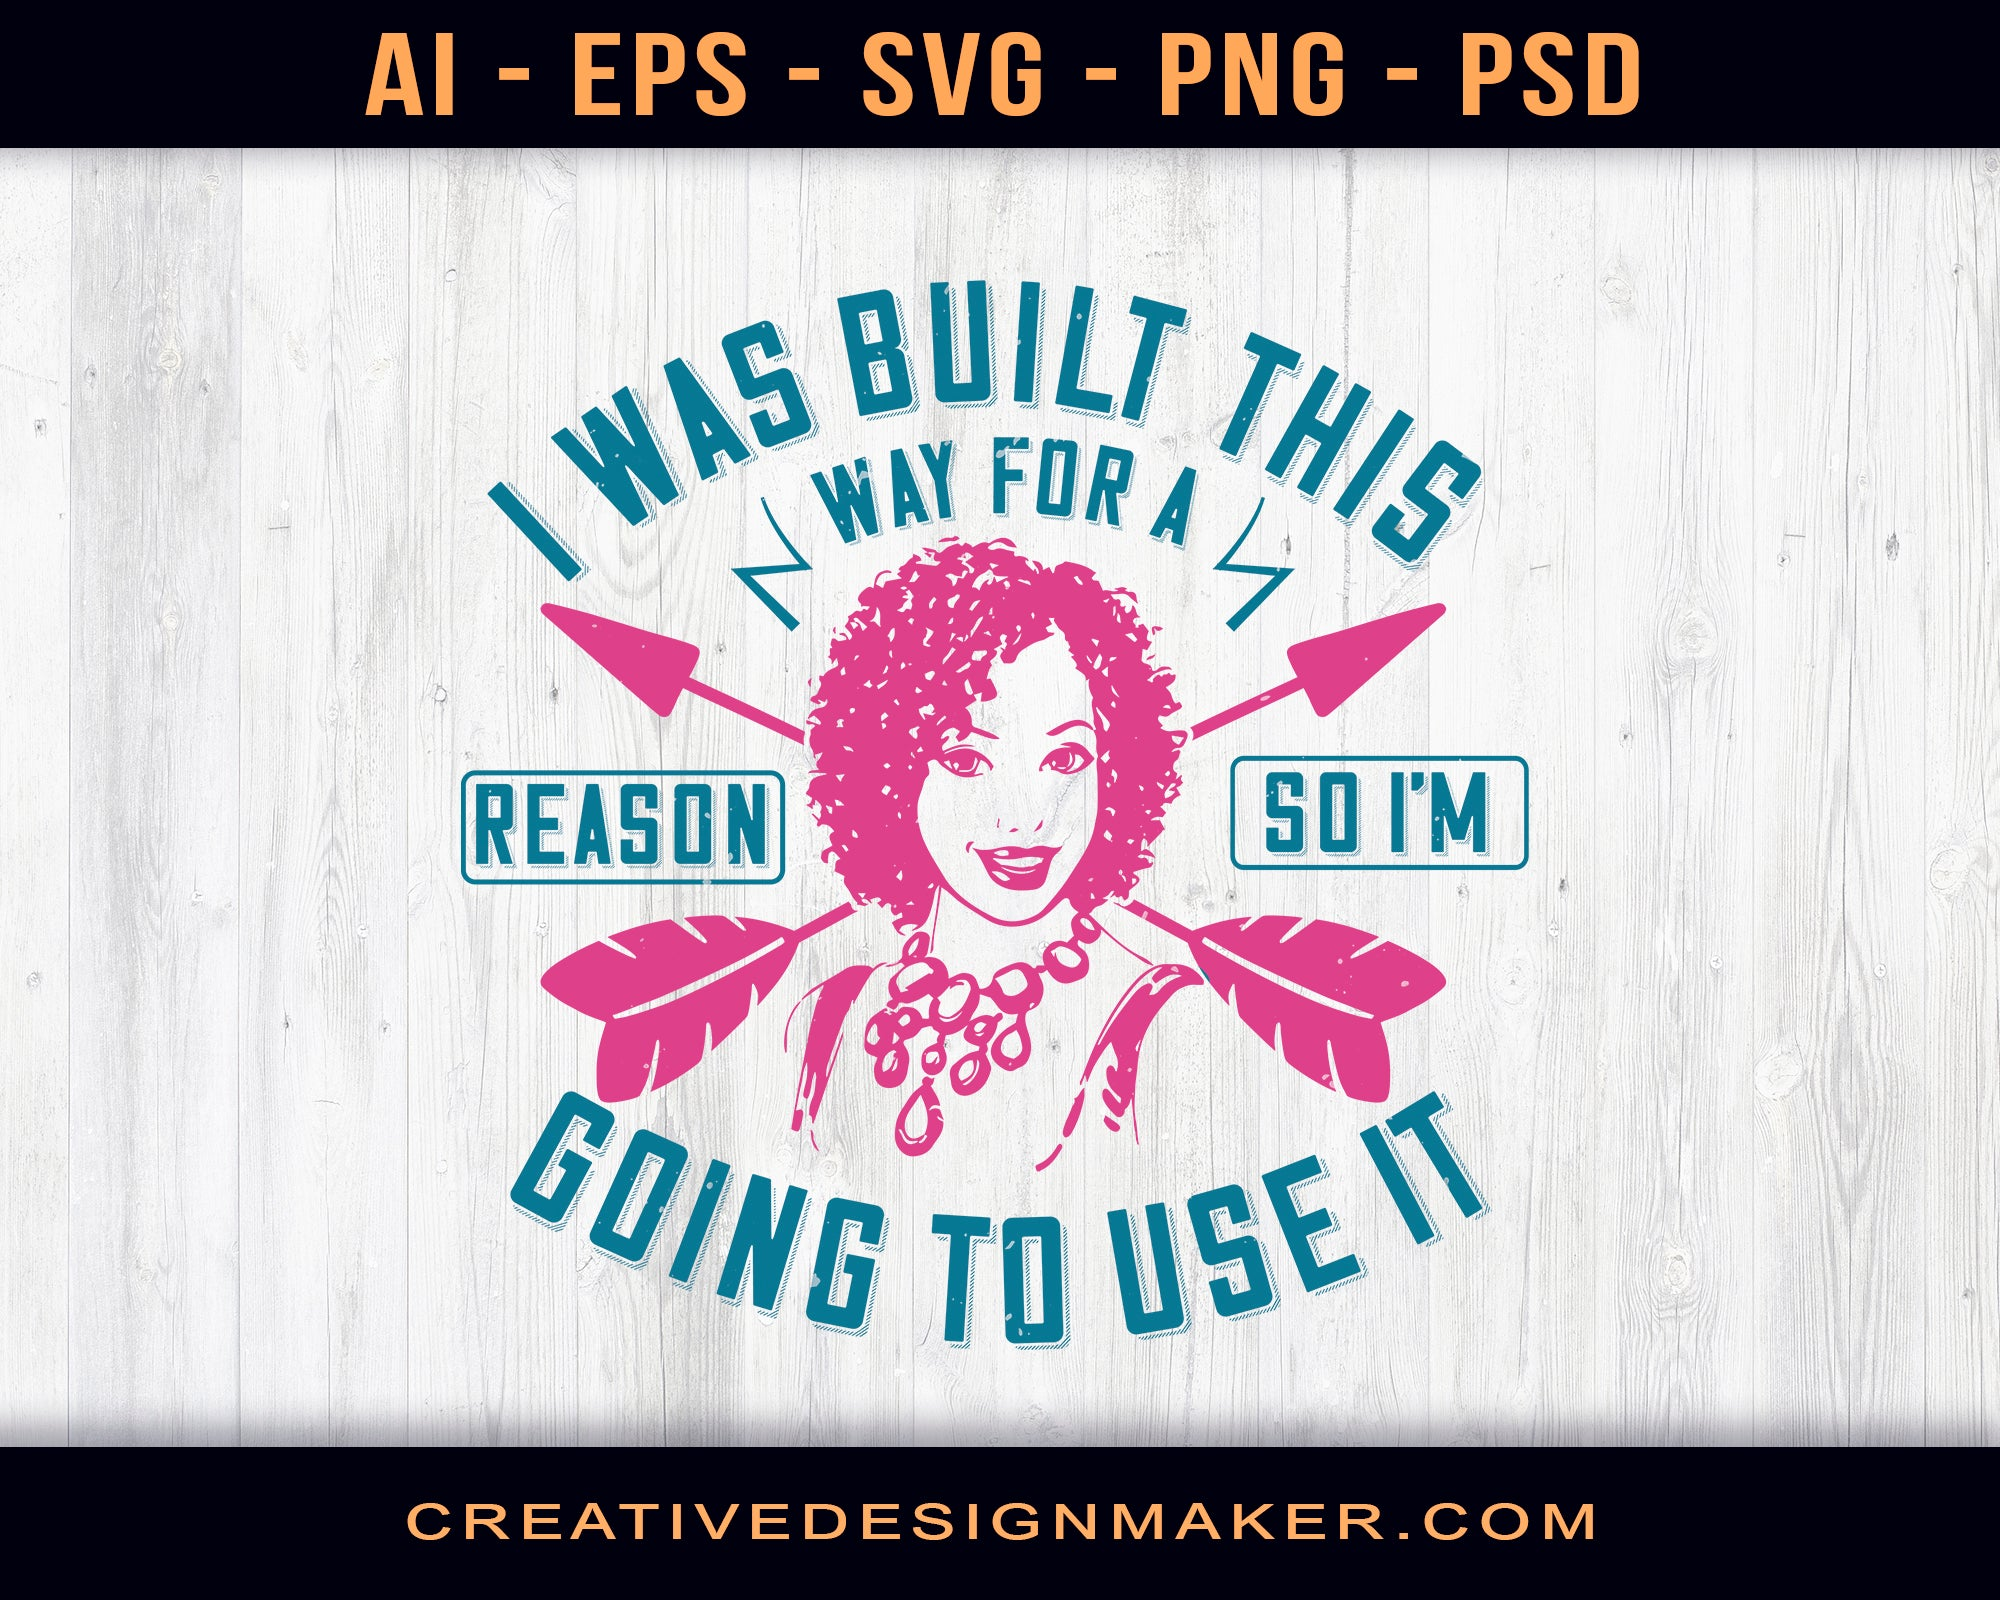 I Was Built This Way For A Reason, So I'm Going To Use It Afro Print Ready Editable T-Shirt SVG Design!